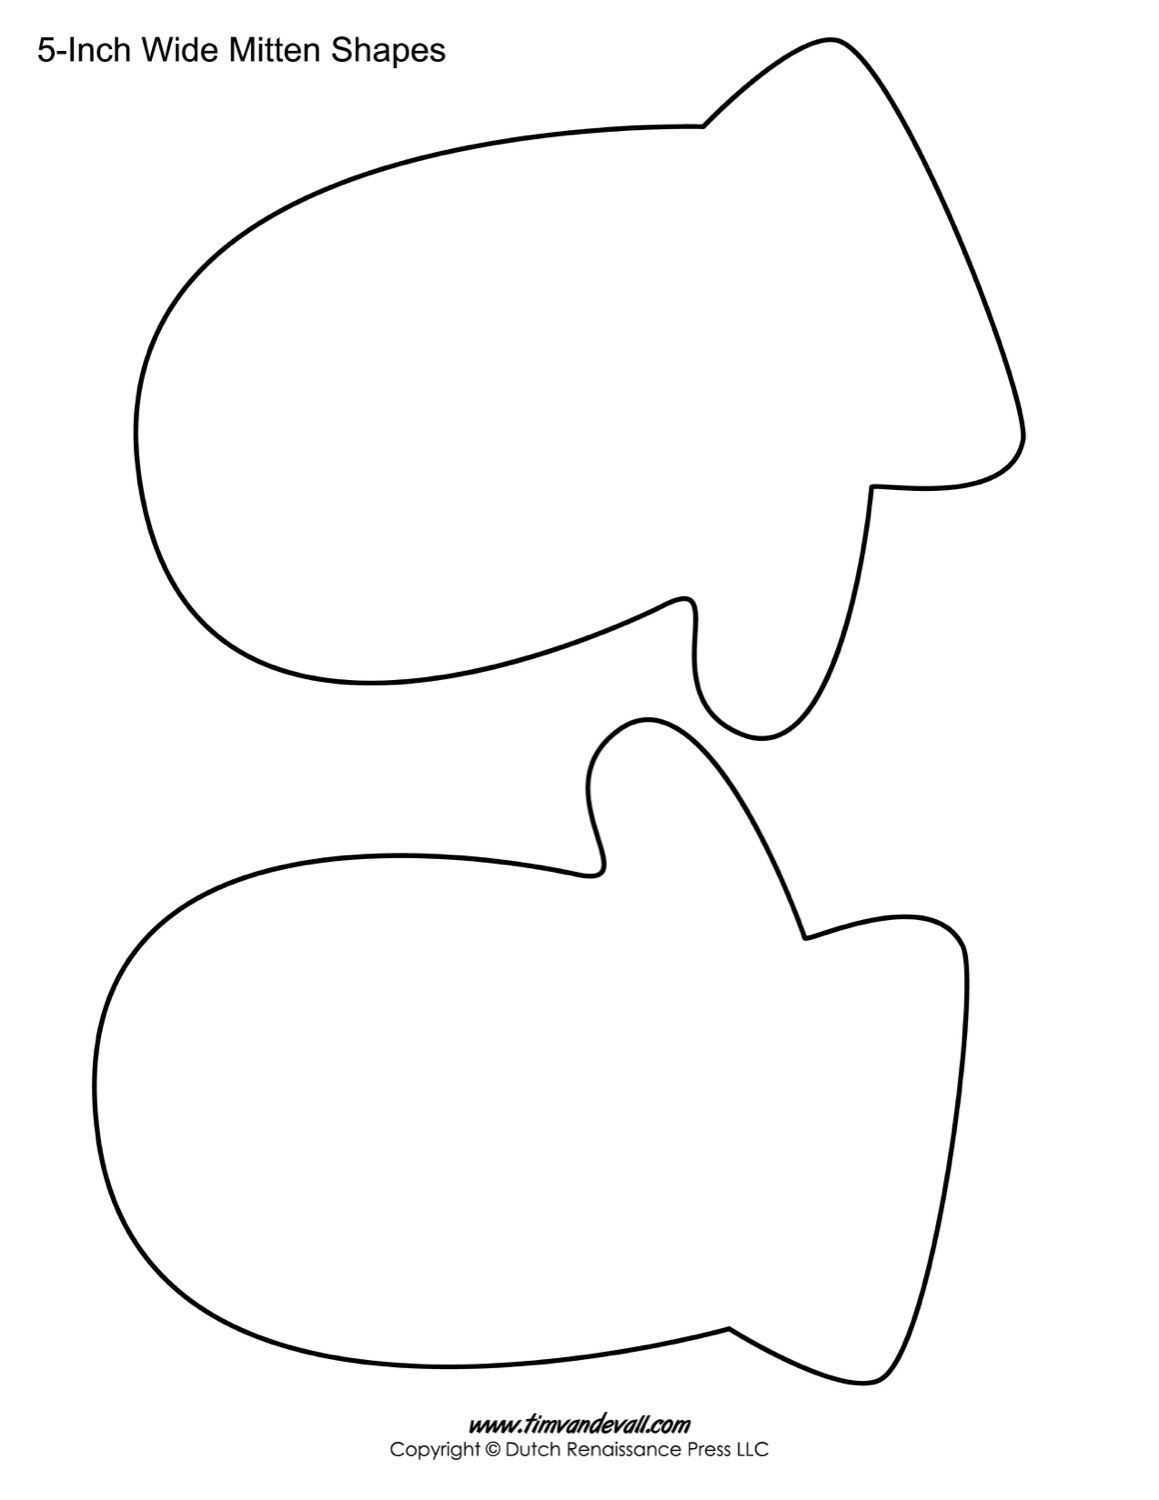 large coloring pages for mittens | Printable Mitten Templates | Blank Mitten Shape Pdfs for ...